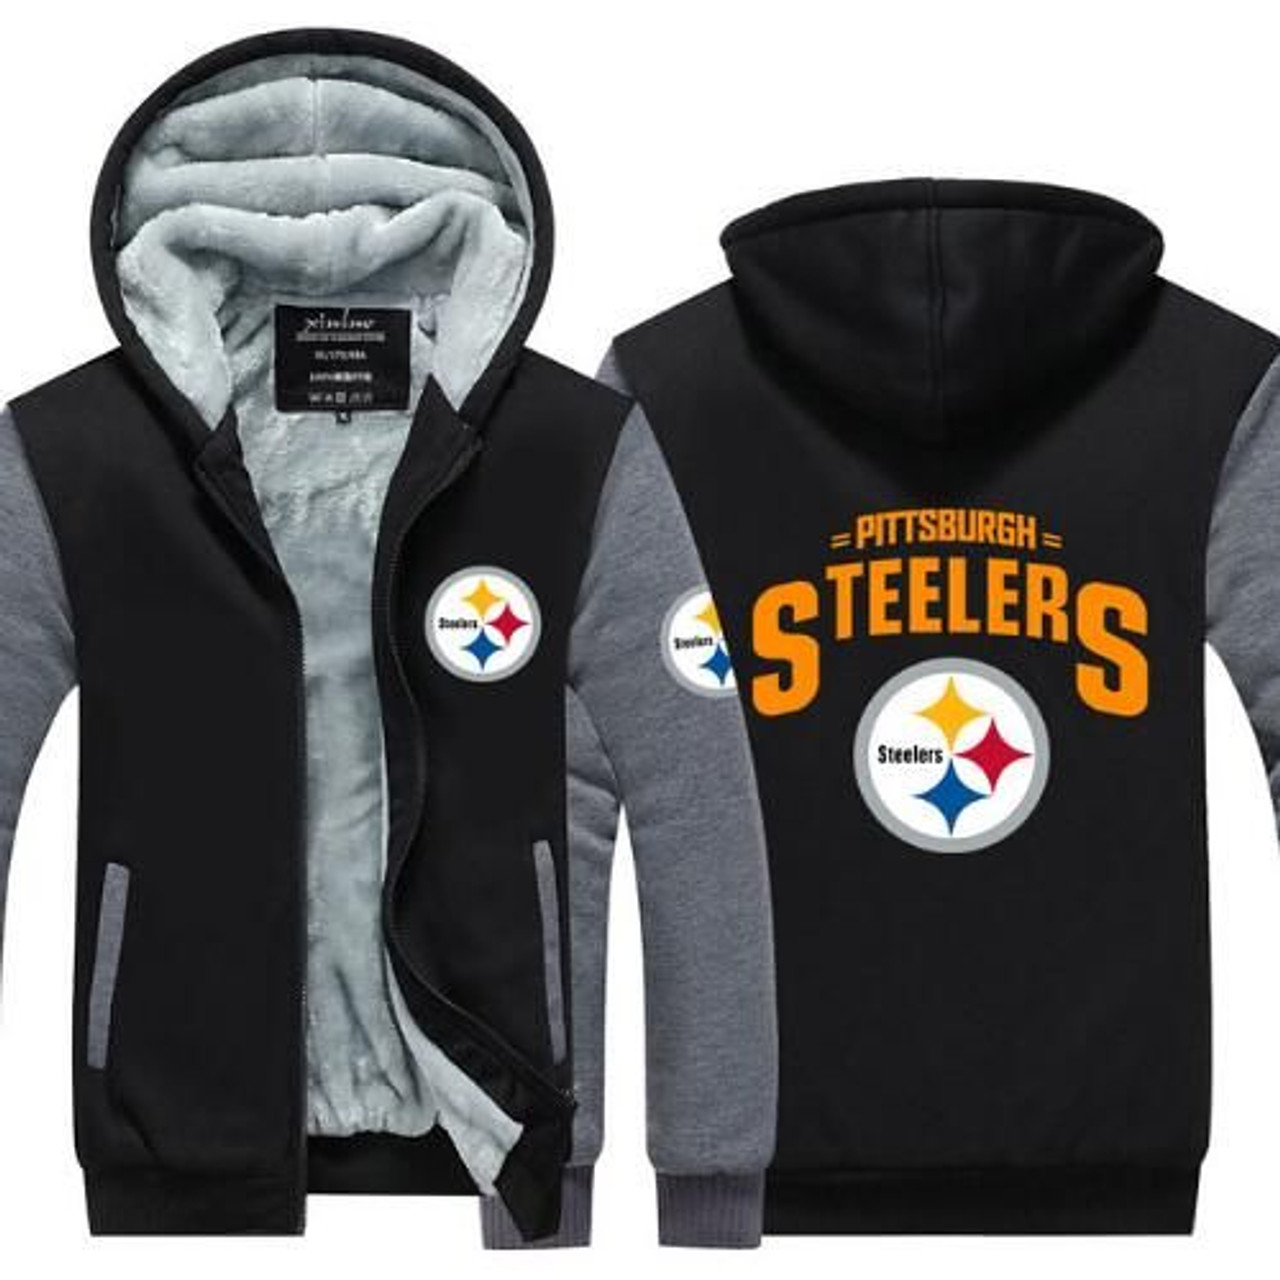 competitive price 5450c 0319d **(STEELERS/NEW-OFFICIALLY-LICENSED-N.F.L.  PITTSBURGH-STEELERS/NEW-TWO-TONE-STYLE,FLEECE-LINED-TEAM-JACKETS/3-D-CUSTOM-DETAILED-GRAPHIC-PRINTED-DOUBLE...